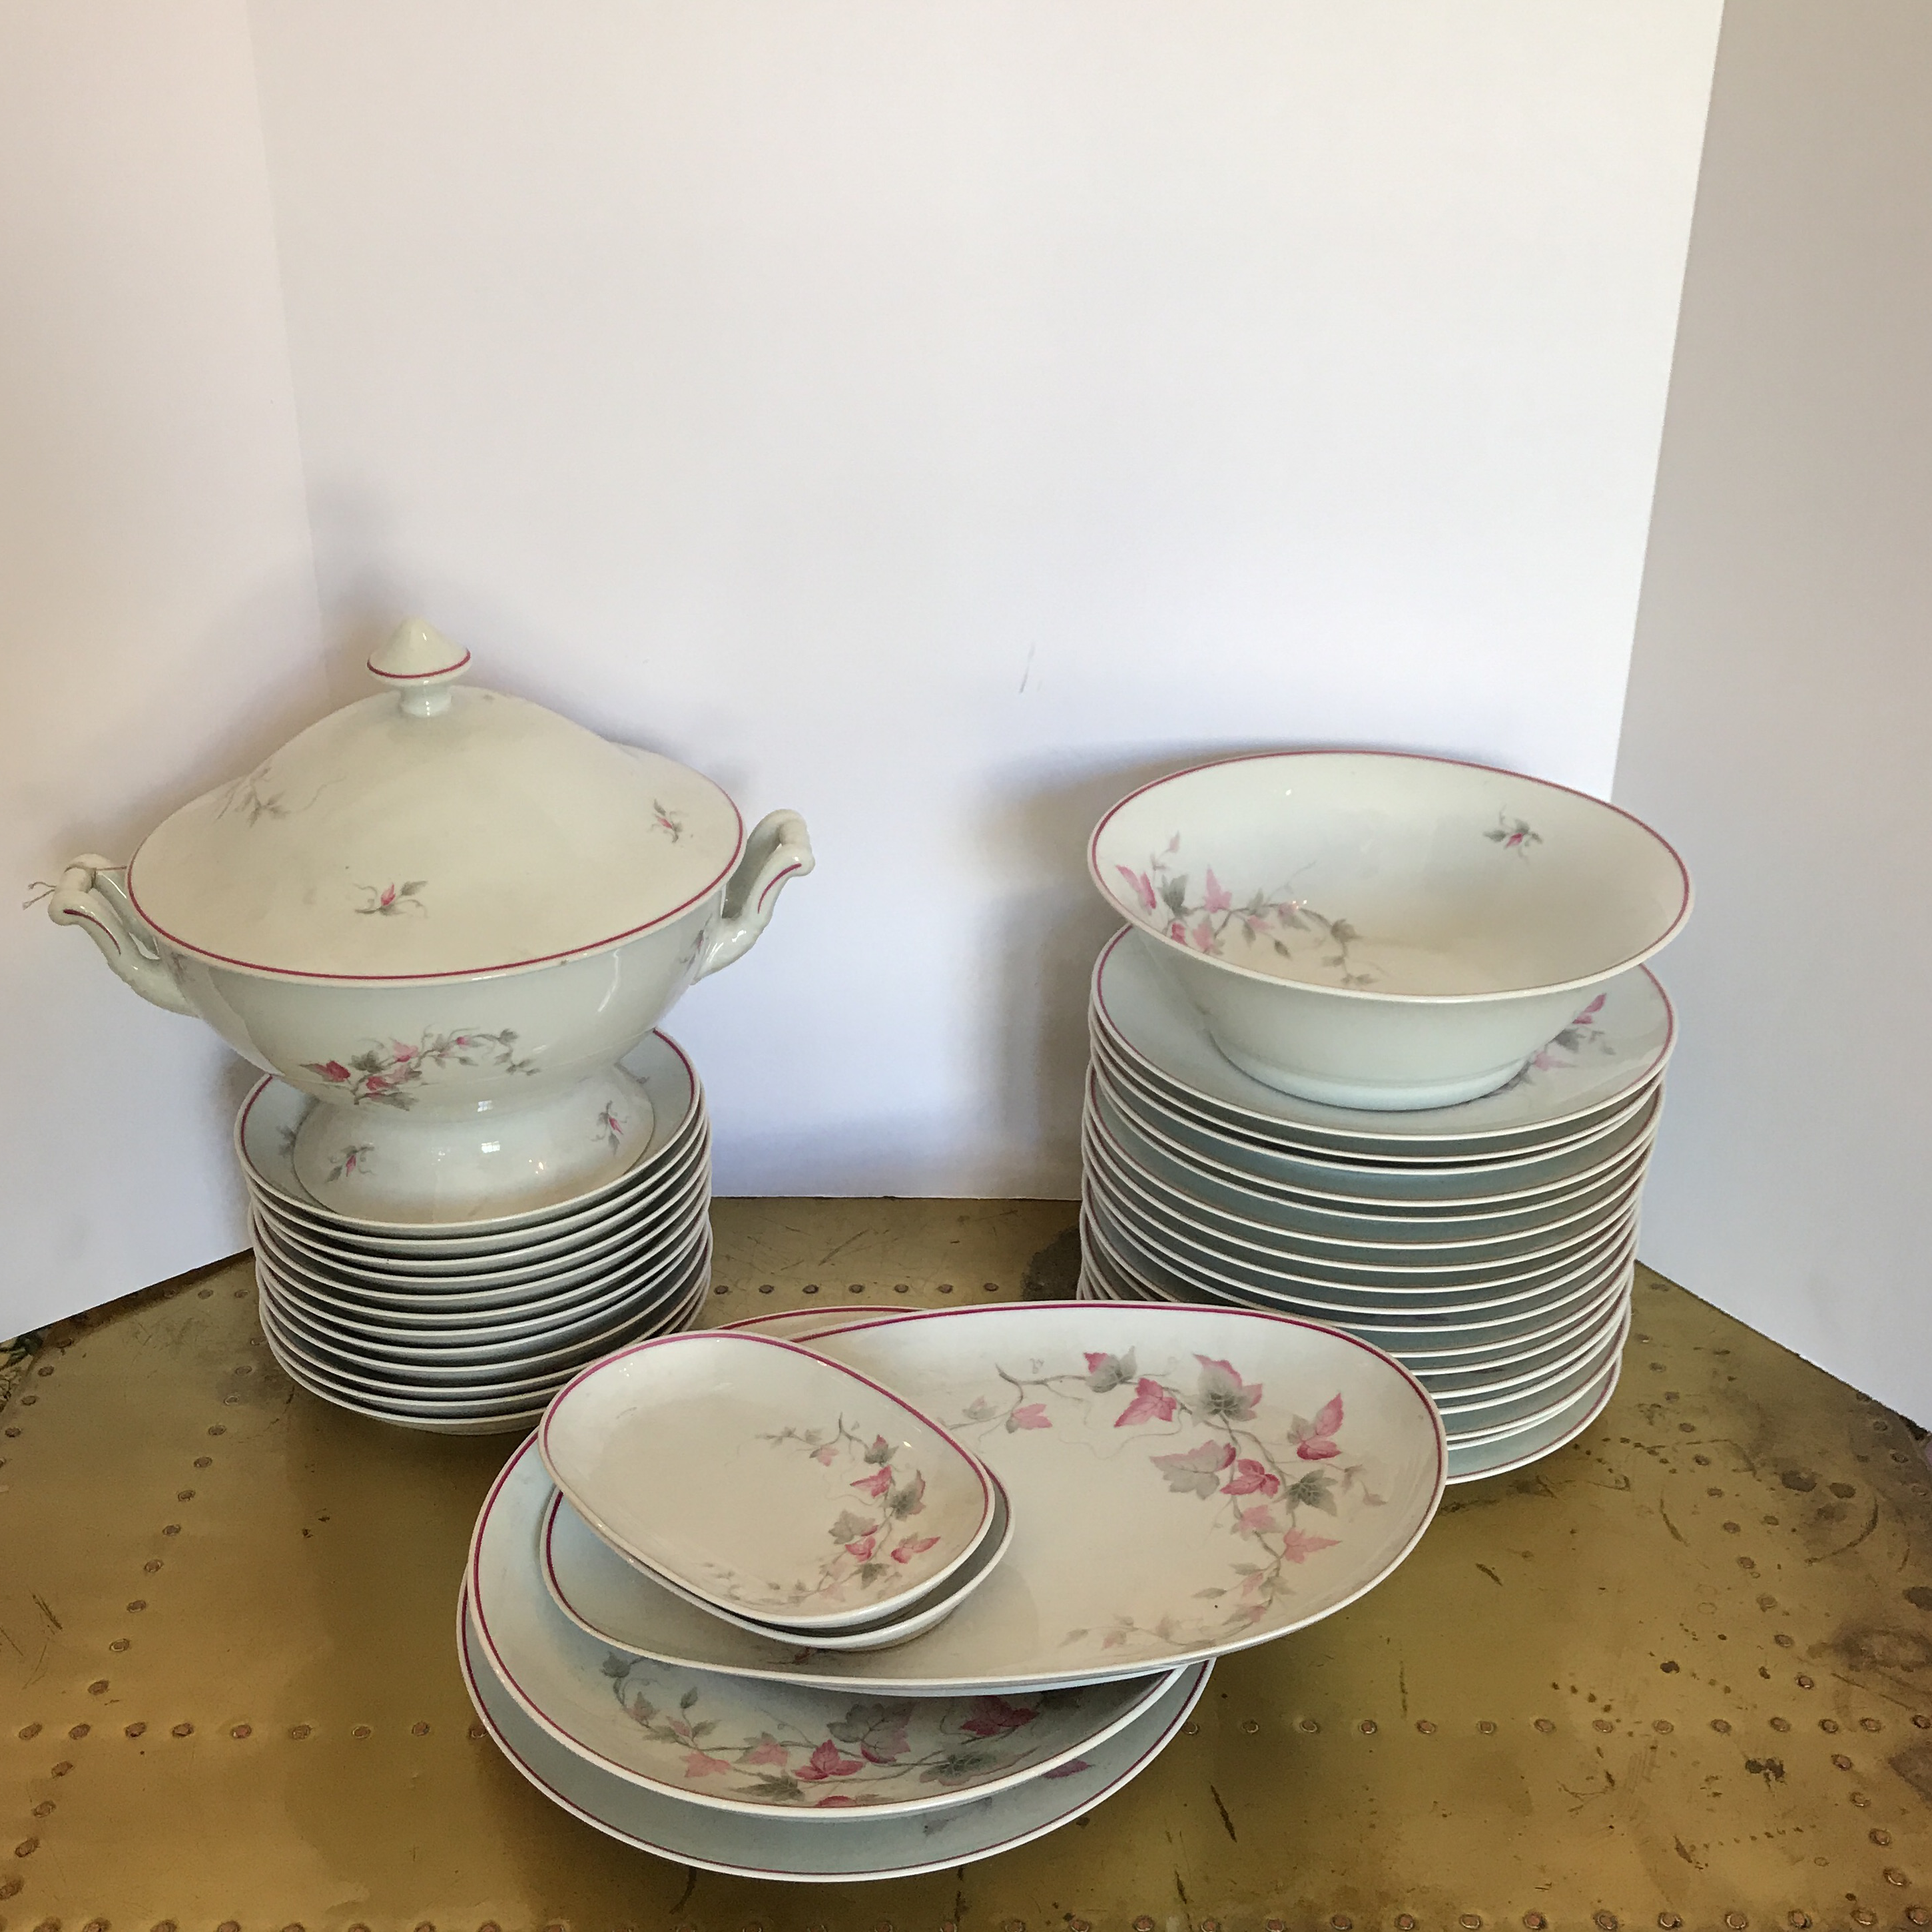 Limoges Porcelain Dinnerware - 36 Pieces - Image 2 of 8 & Limoges Porcelain Dinnerware - 36 Pieces | Chairish